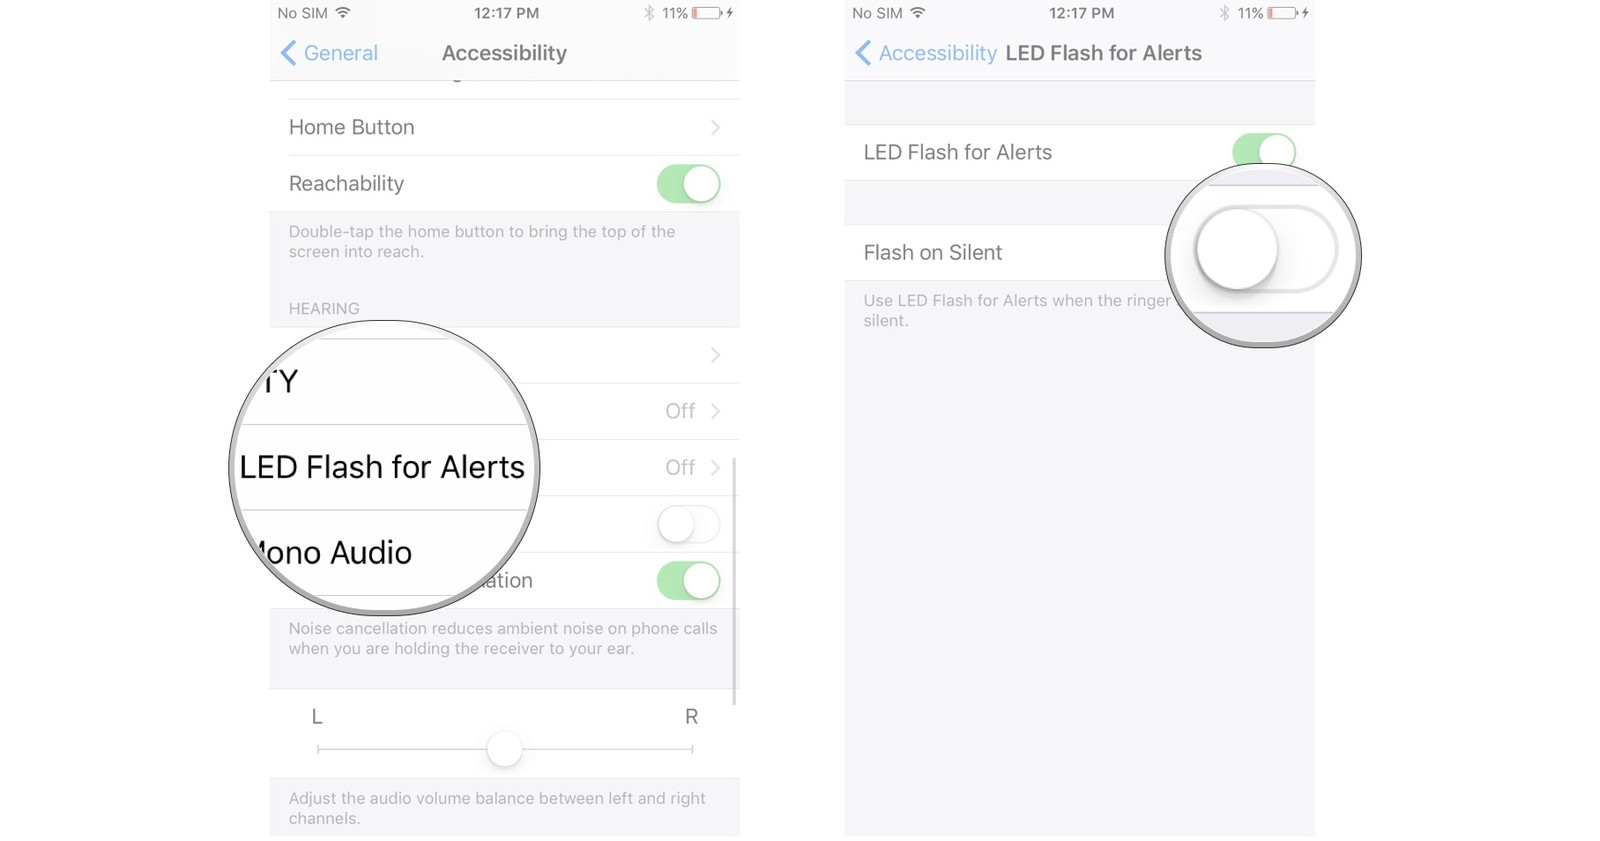 Tap LED Flash for Alerts, tap the switch next to Flash on Silent